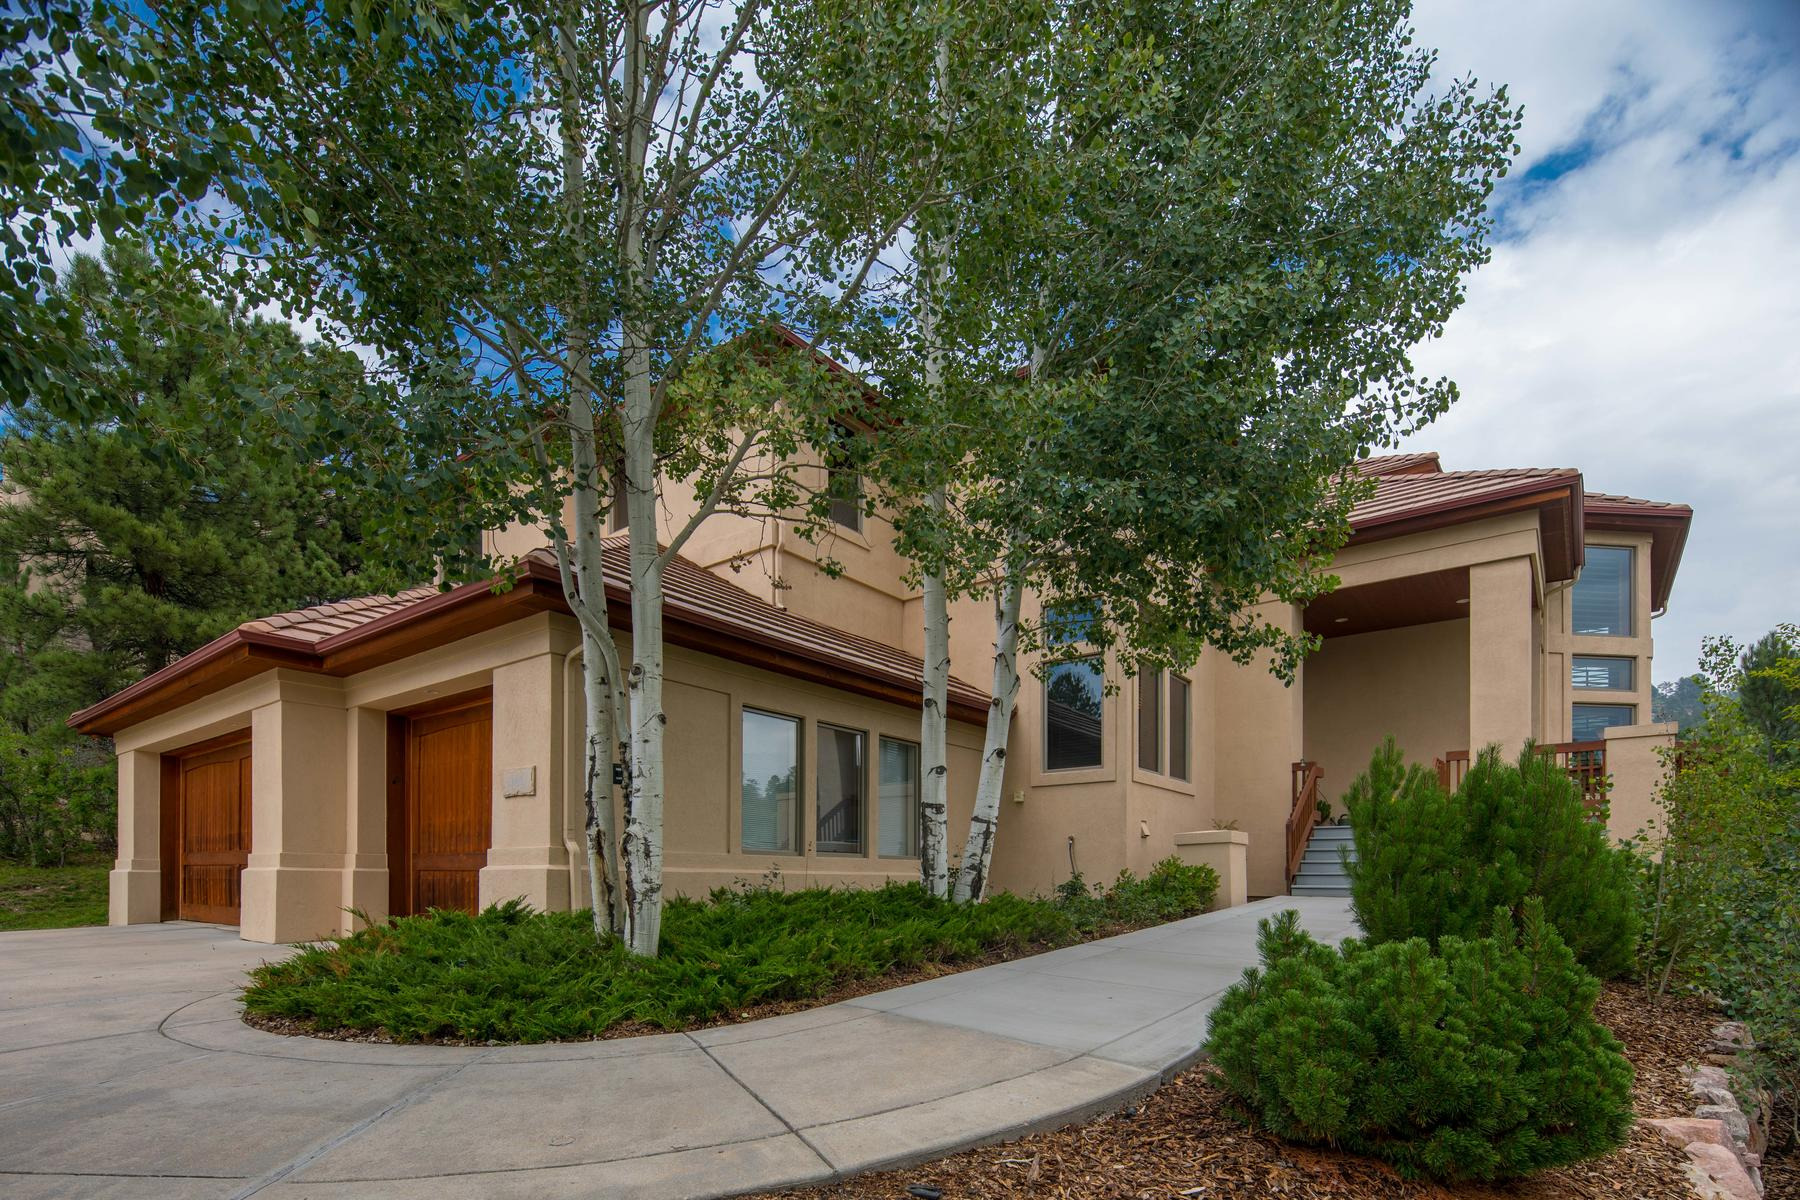 Single Family Home for Active at 946 Country Club Pkwy 946 Country Club Pkwy Castle Rock, Colorado 80108 United States